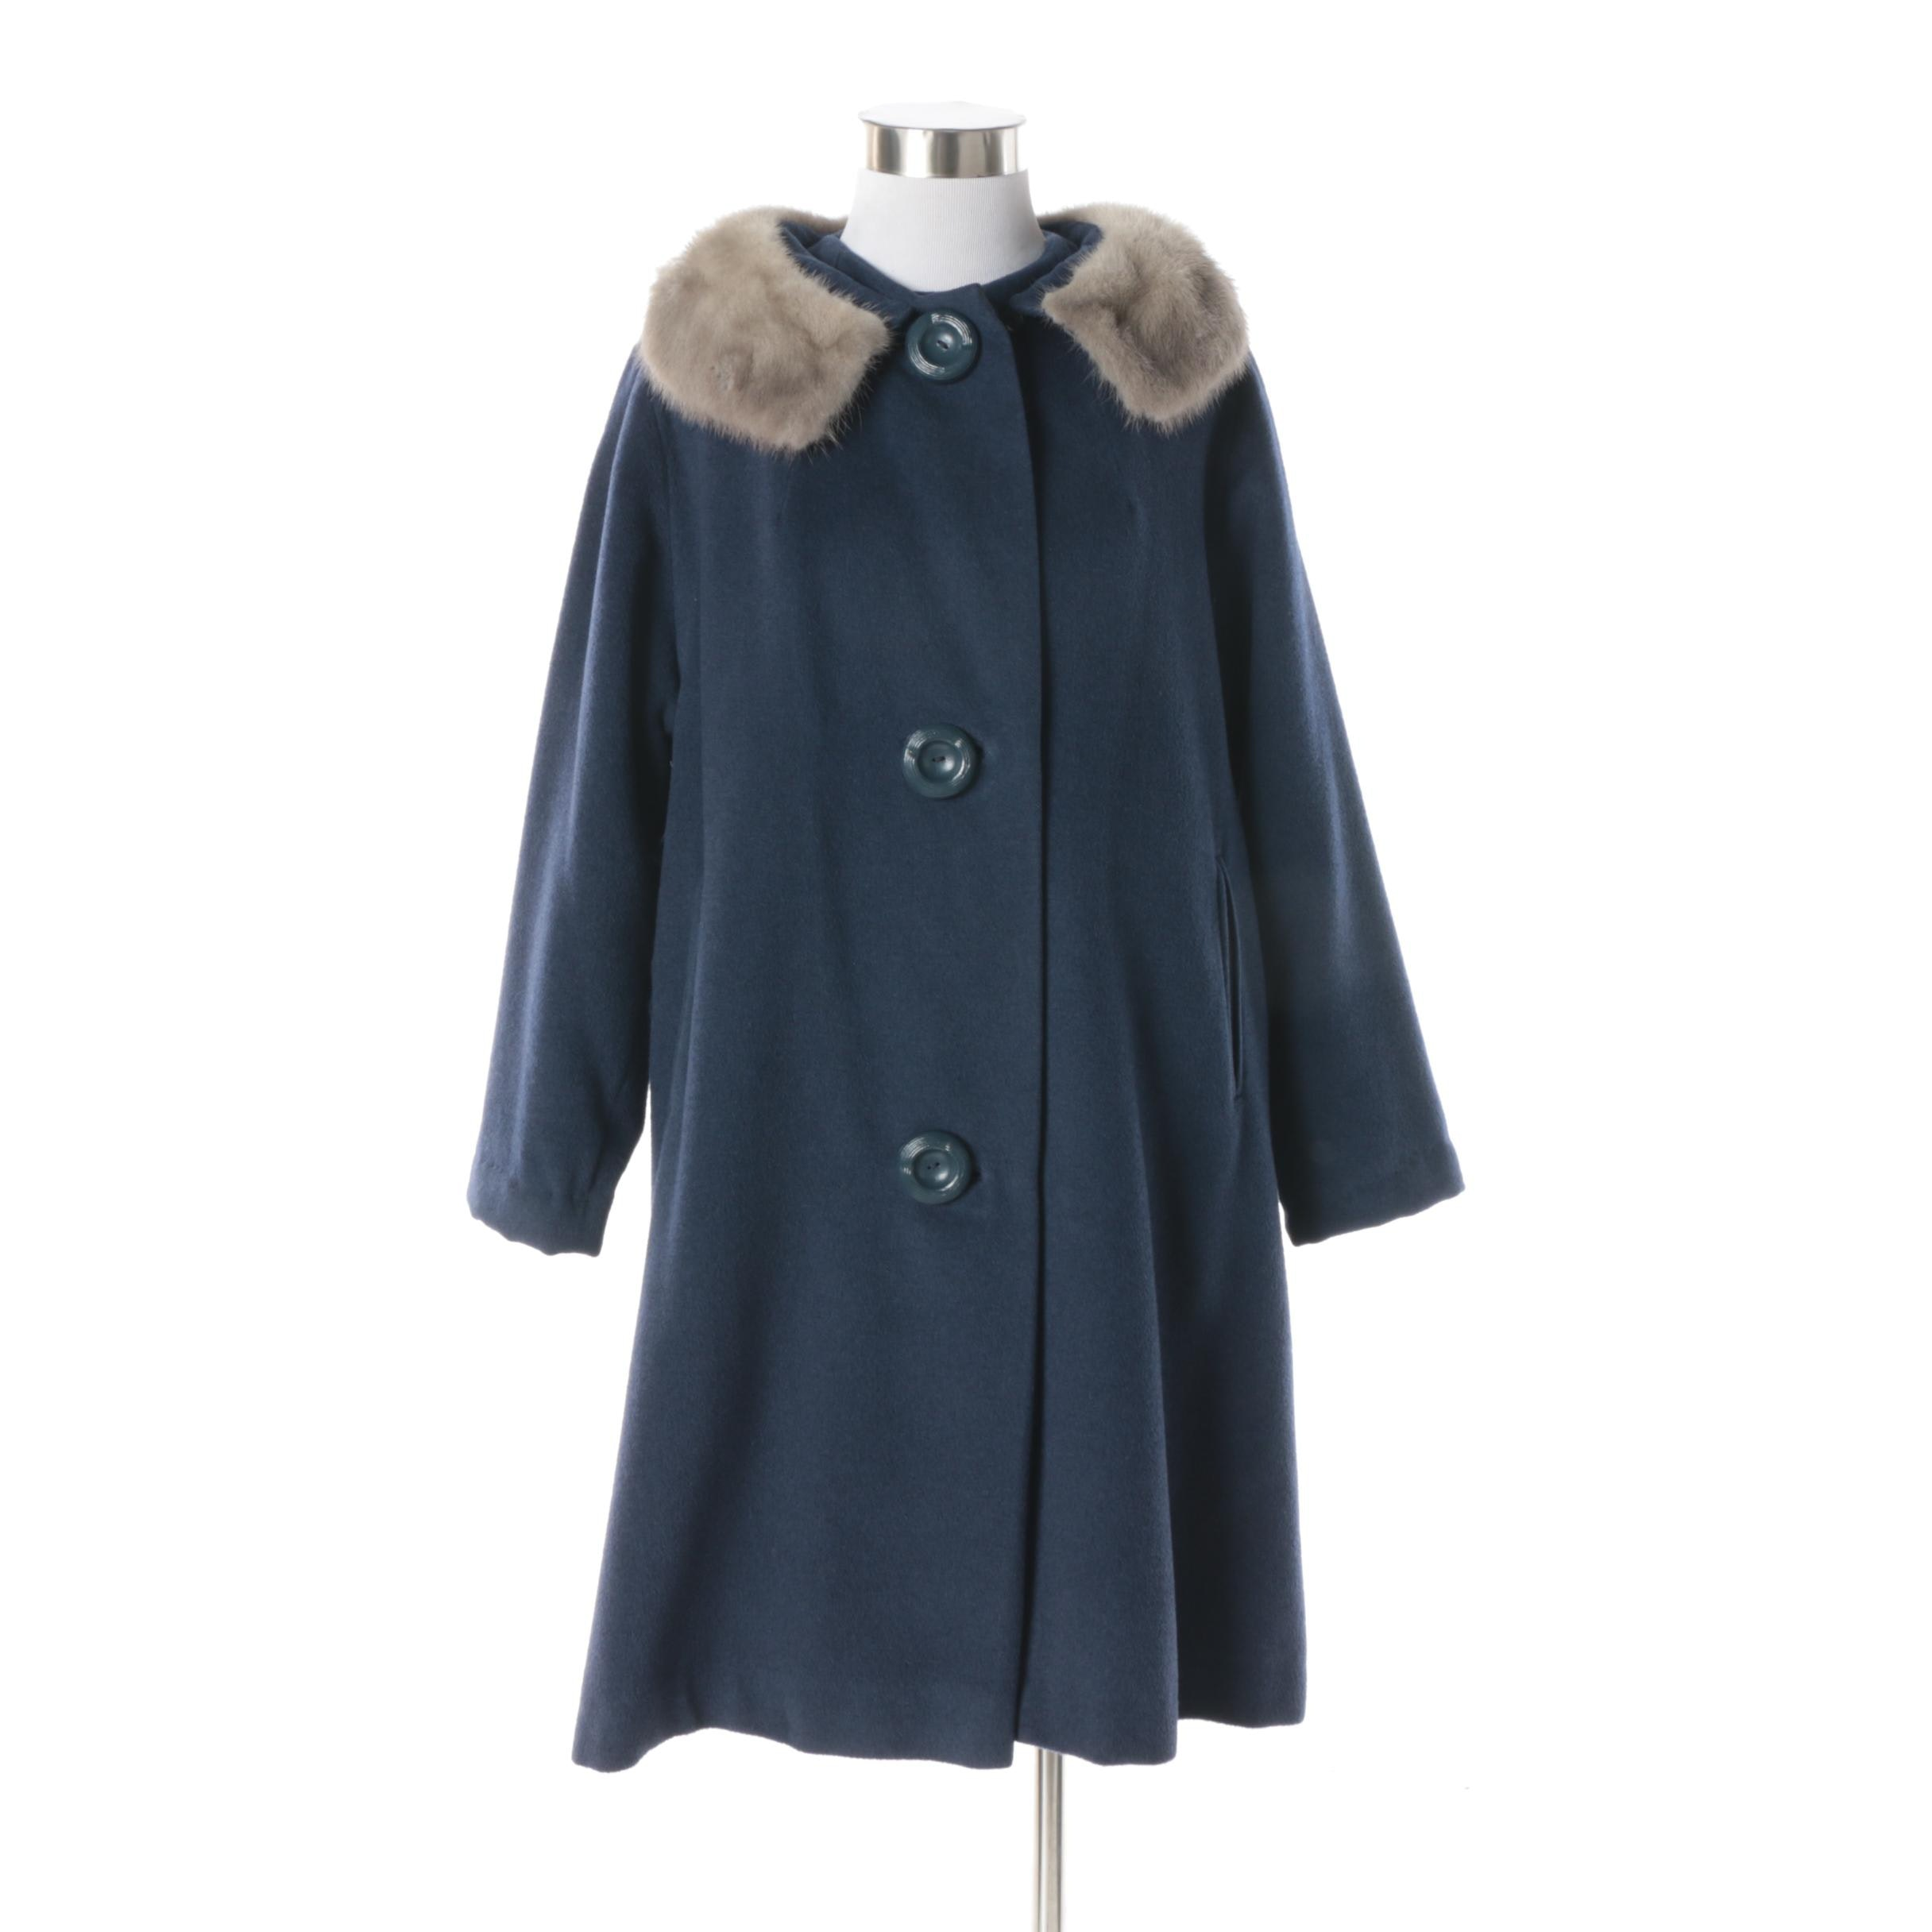 Women's Vintage Titche's Navy Wool Blend Coat with Silver Mink Fur Collar